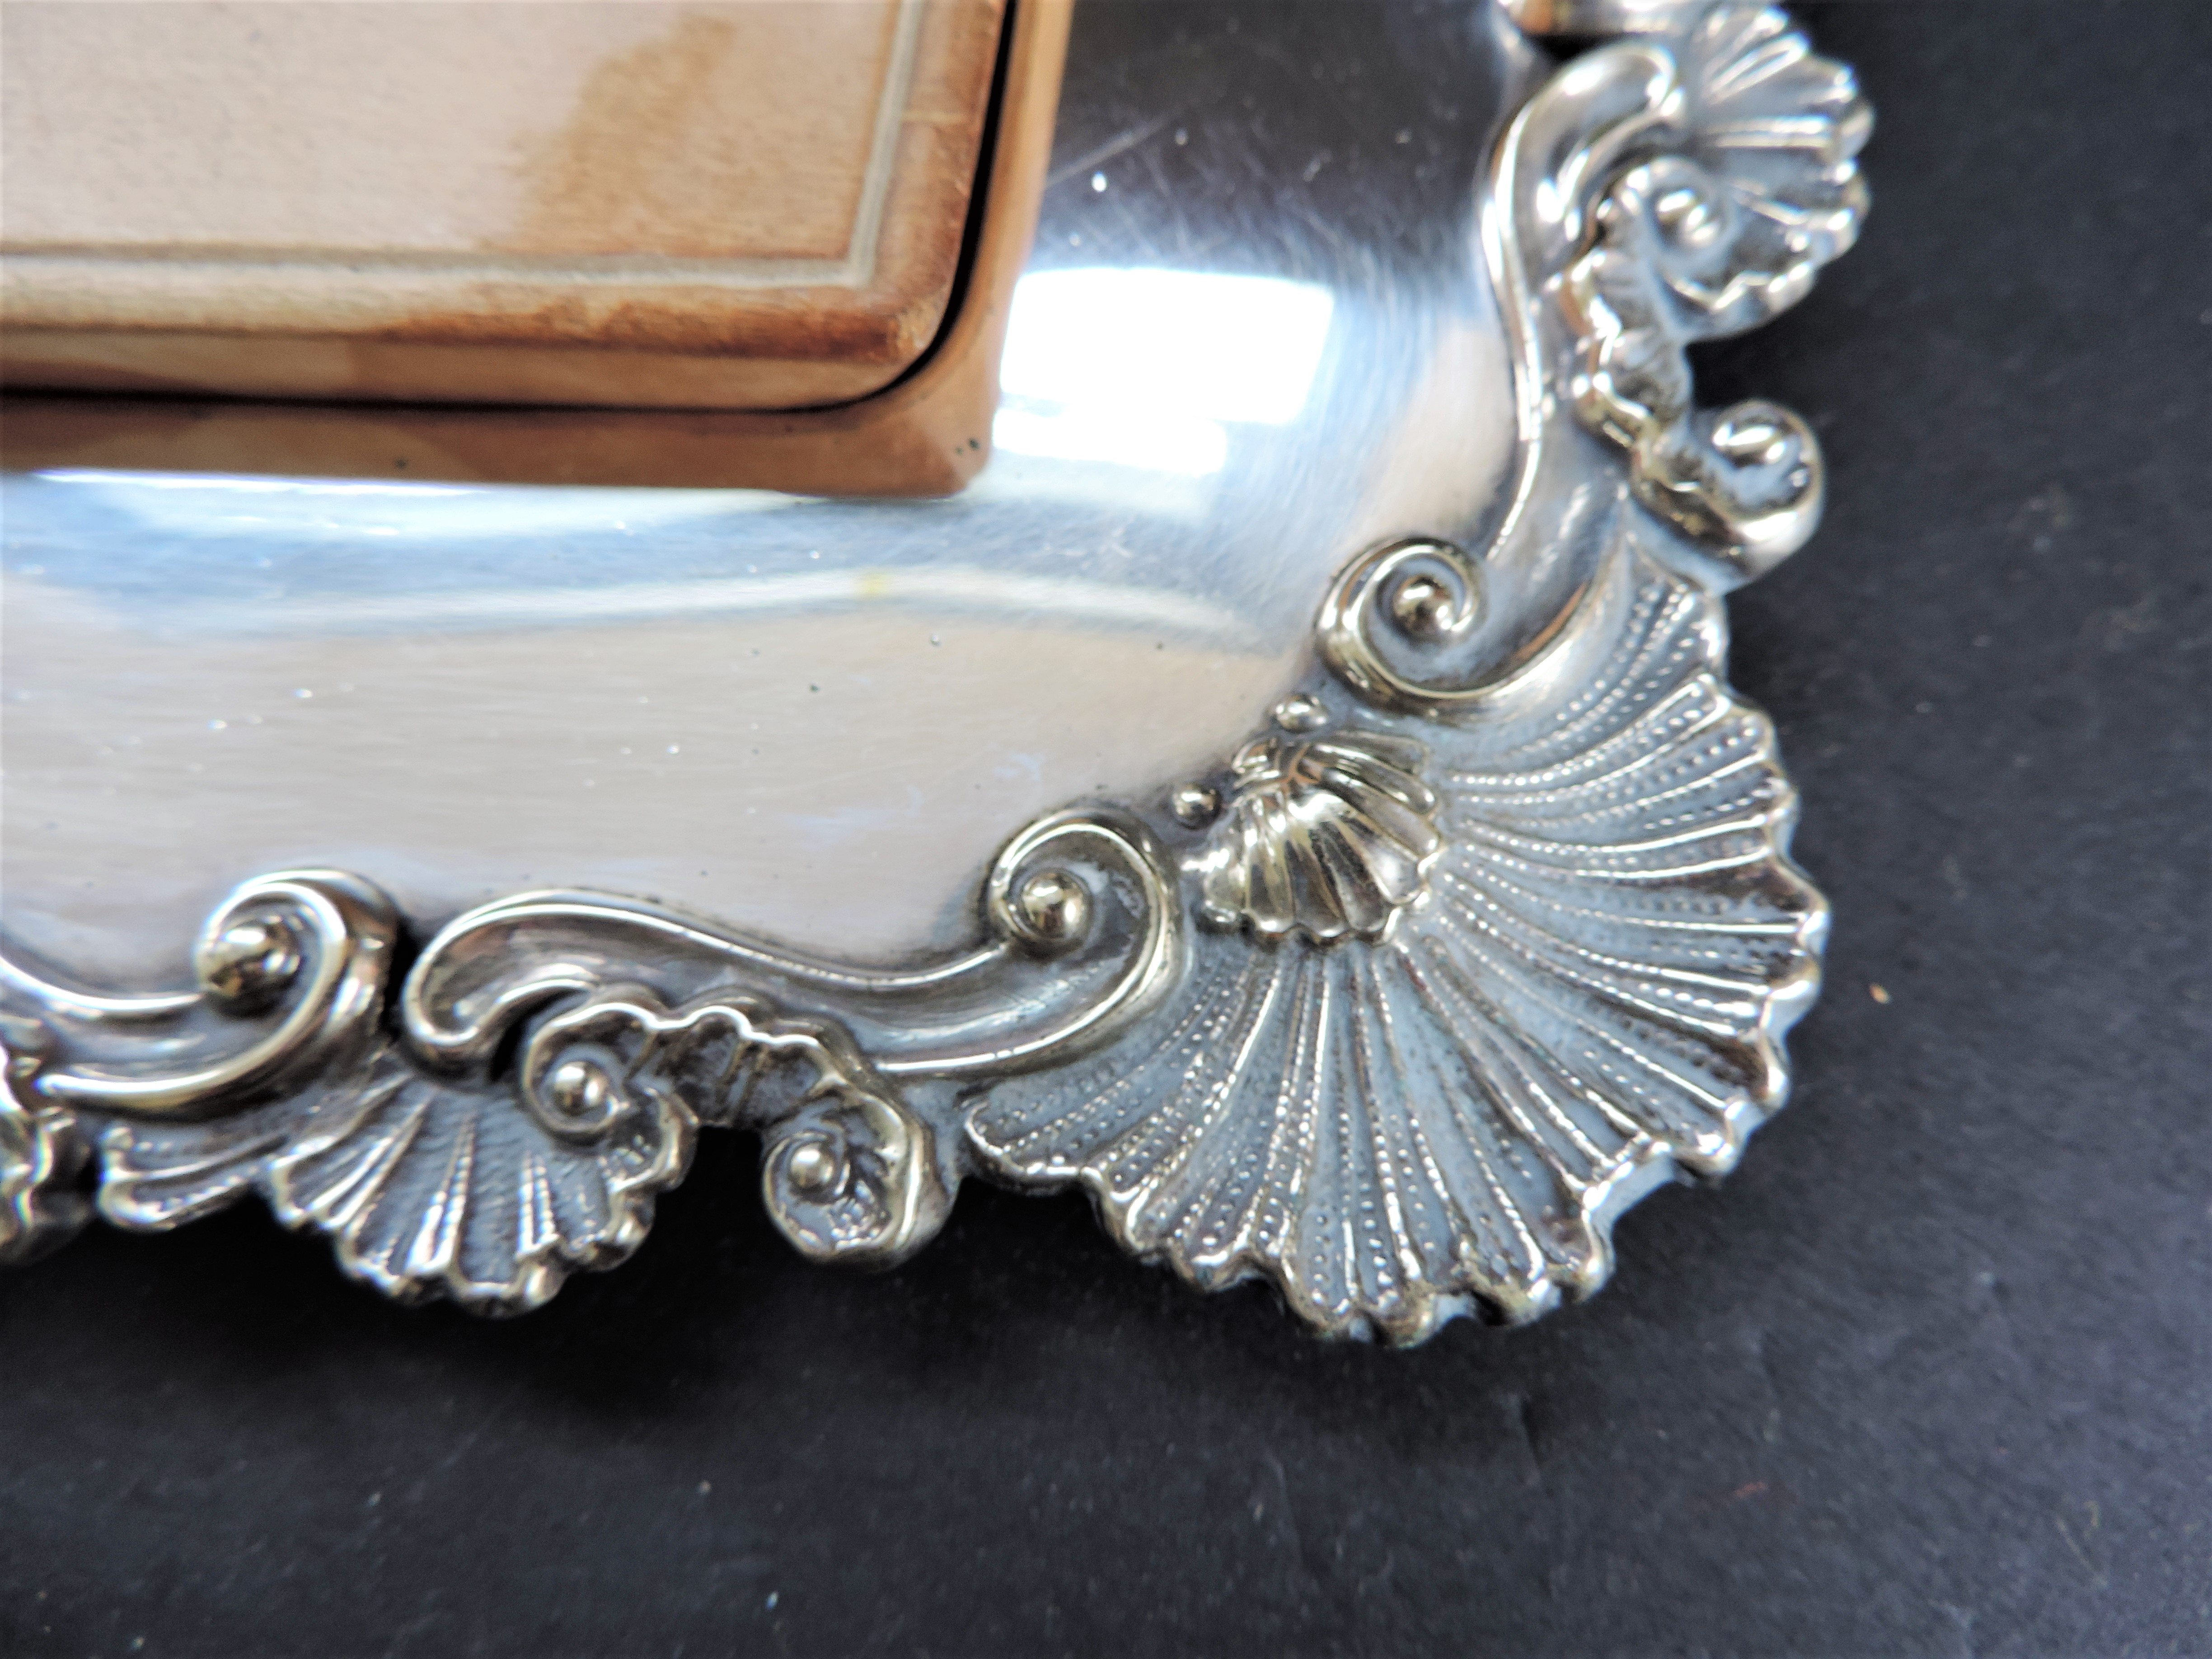 Antique Victorian Silver Plated Bread/Cheese Board Serving Set - Image 6 of 6